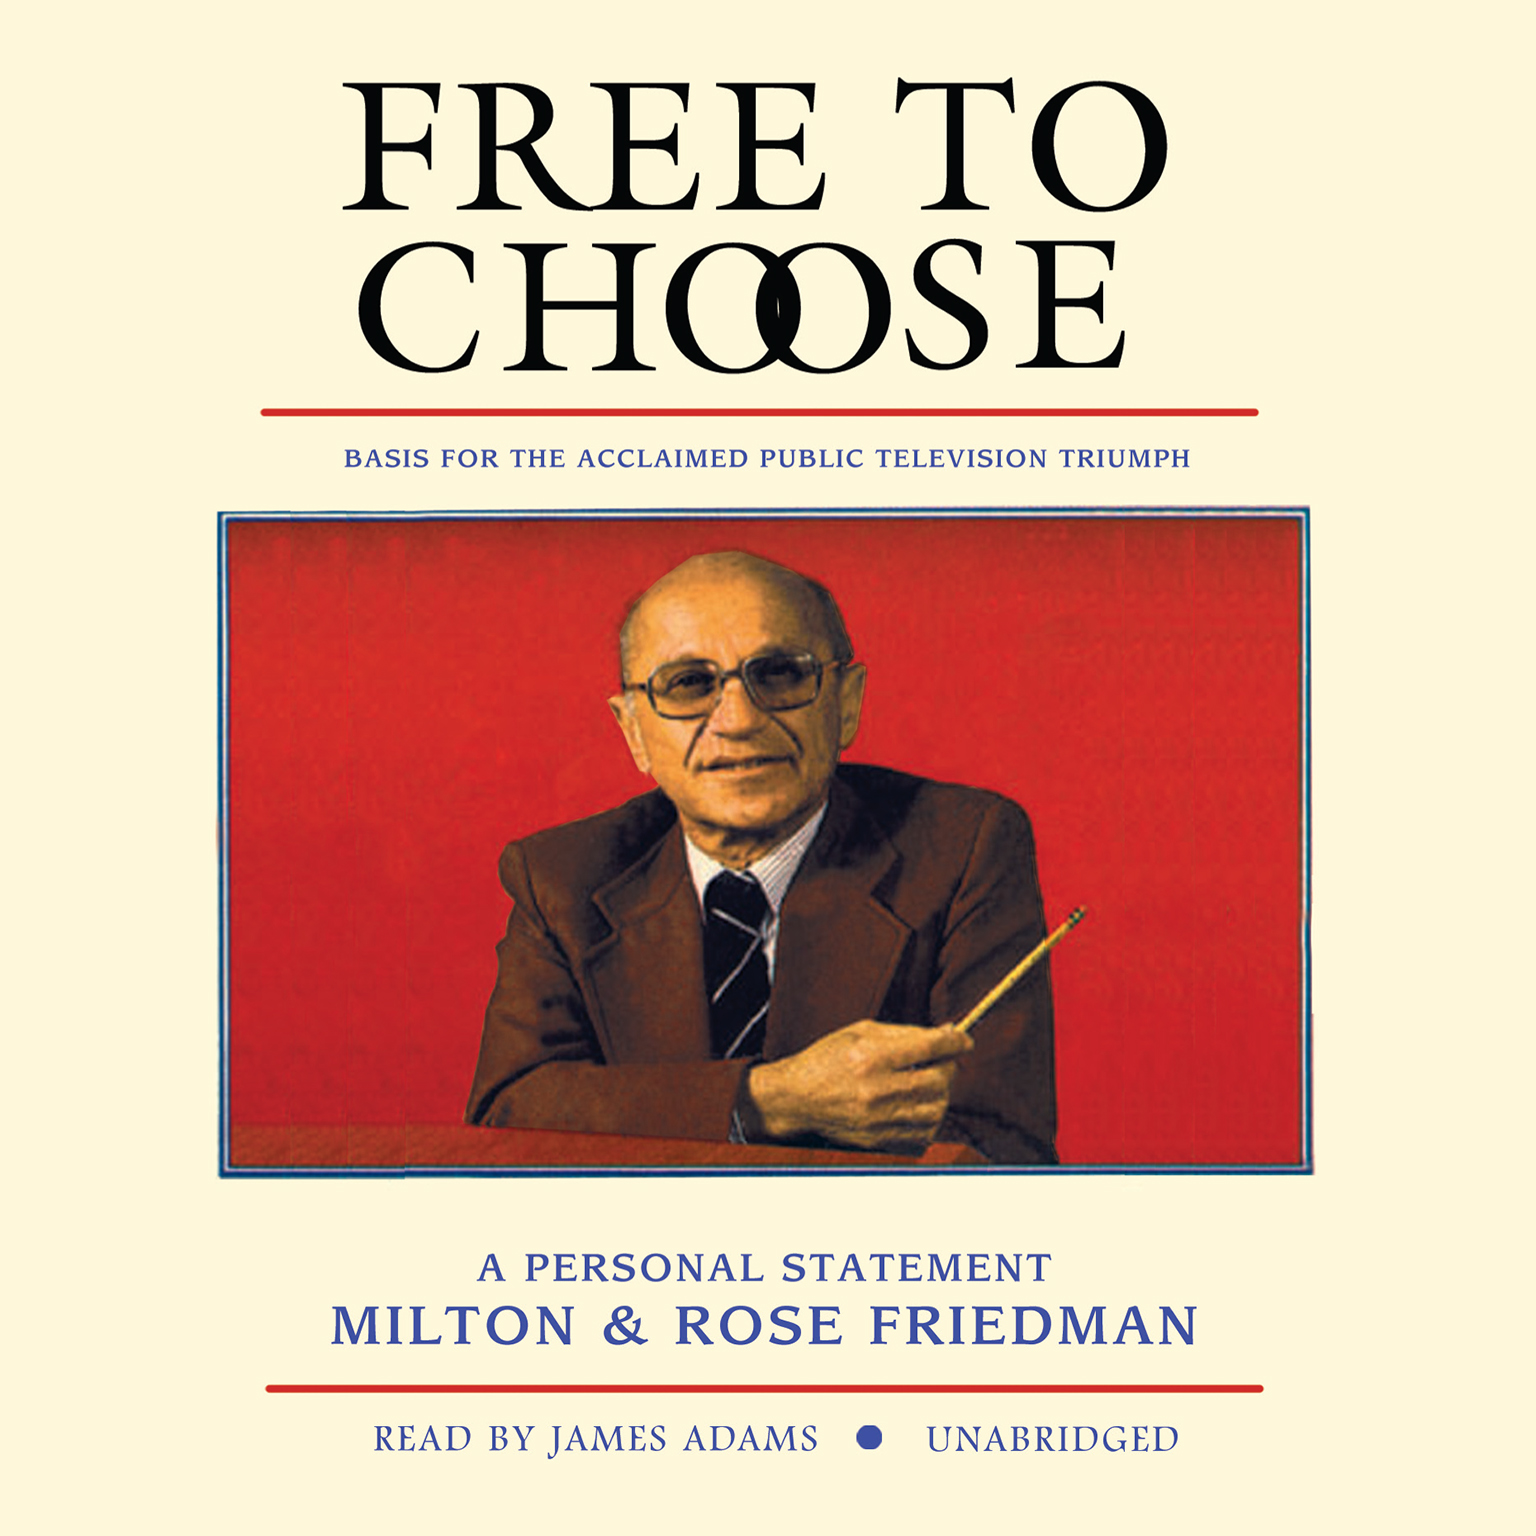 hear to choose audiobook by milton friedman for just 5 95 extended audio sample to choose a personal statement audiobook by milton friedman